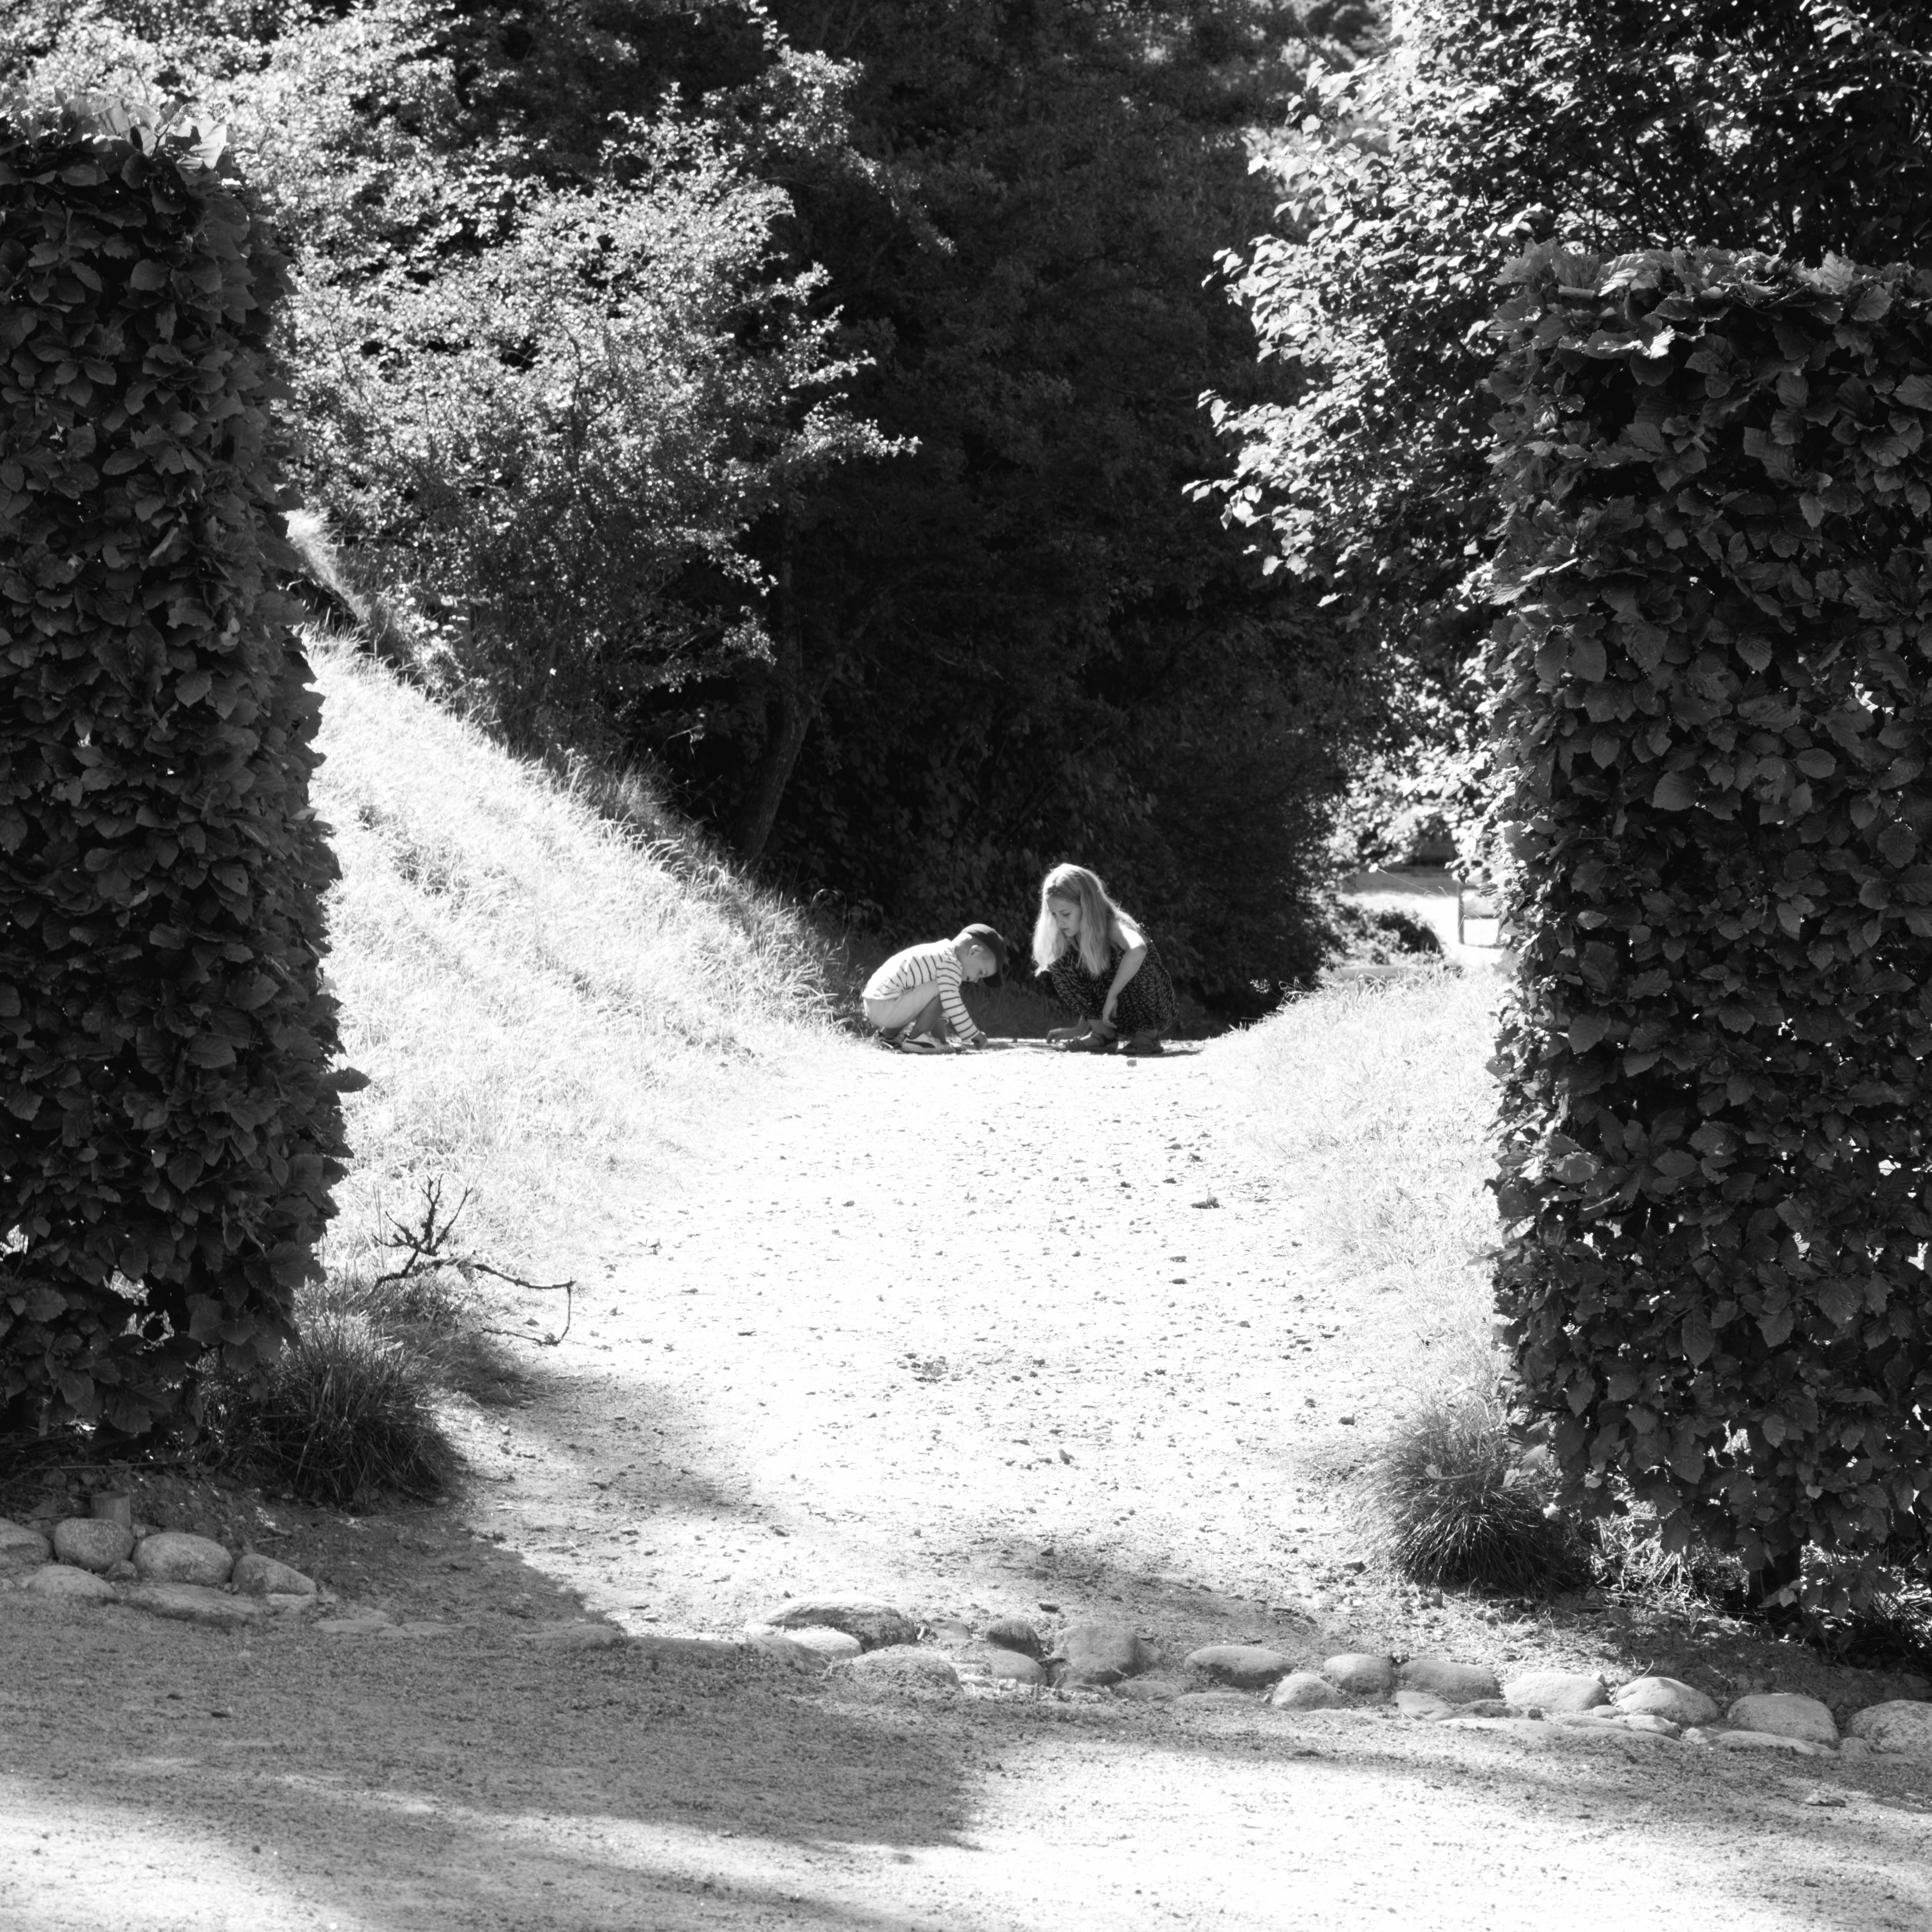 A hole in the hedge at Gunnebo (Mölndal, Sweden) with Leica M Monochrom (Leica Macro-Elmar-M 90mm f/4) by Magnus L Andersson (photography.anderssoneklund.se) at 2013-08-25 11:11:17